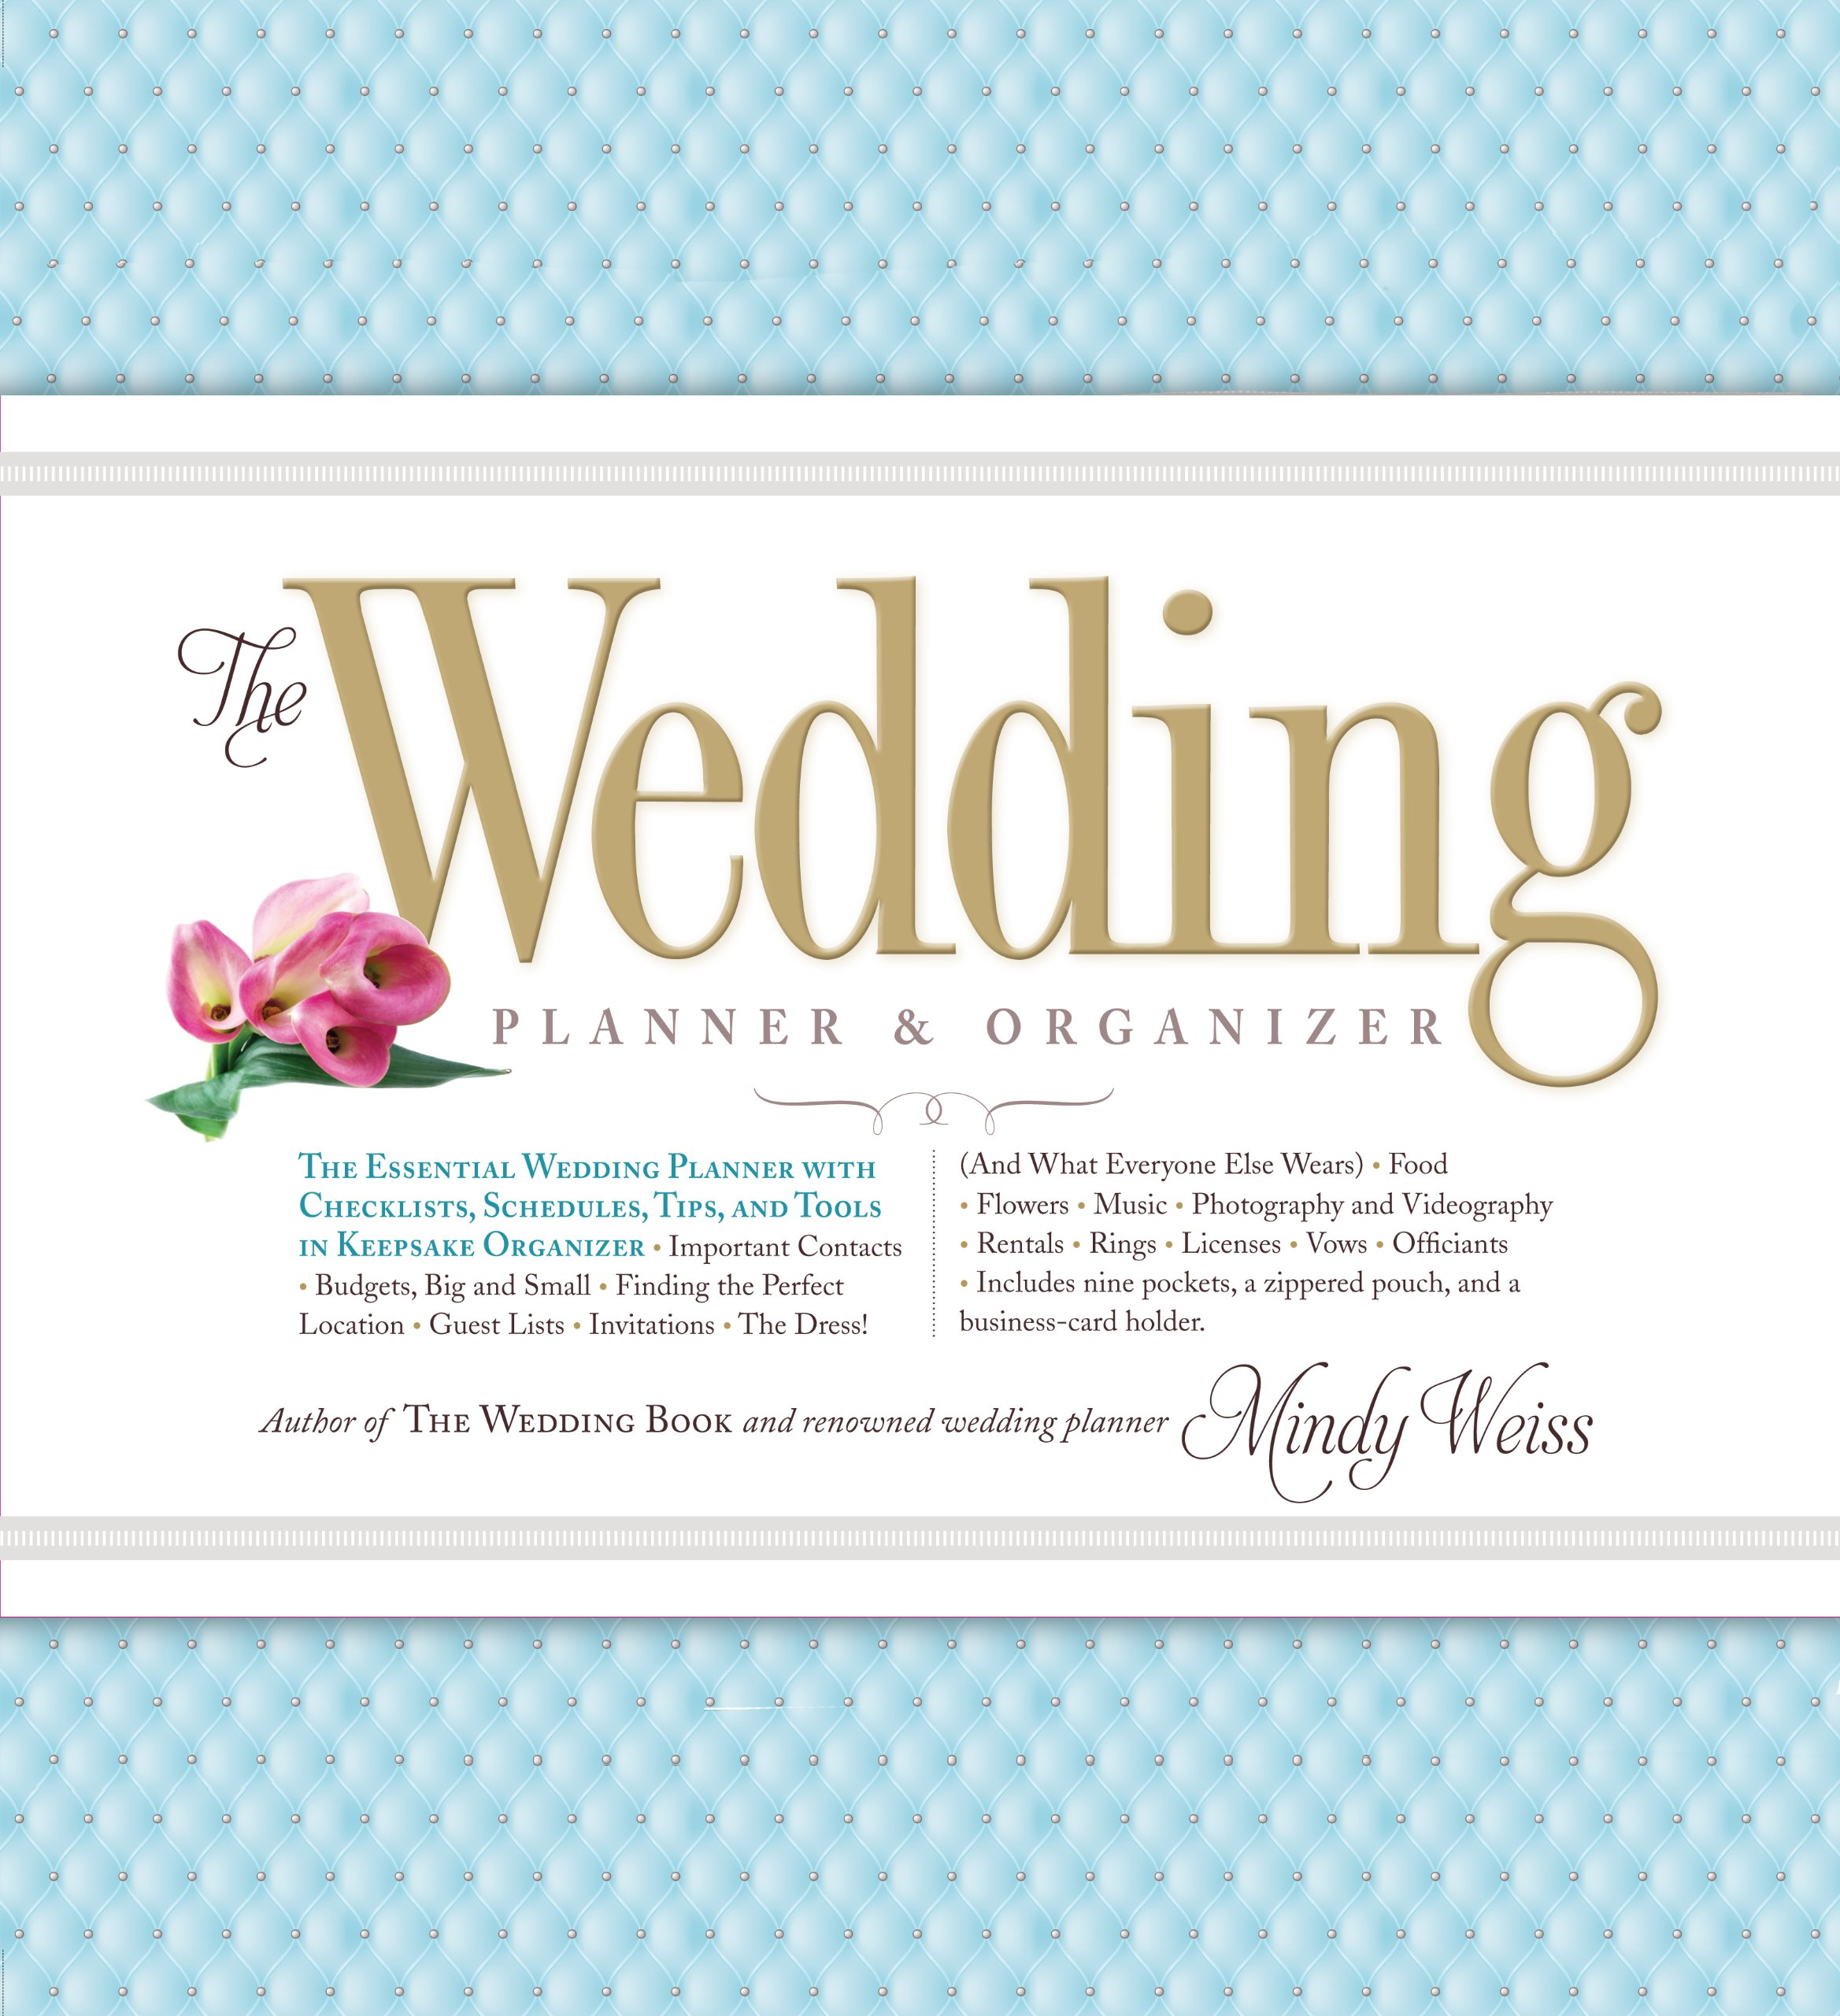 The wedding planner organizer mindy weiss 9780761165972 amazon the wedding planner organizer mindy weiss 9780761165972 amazon books junglespirit Gallery